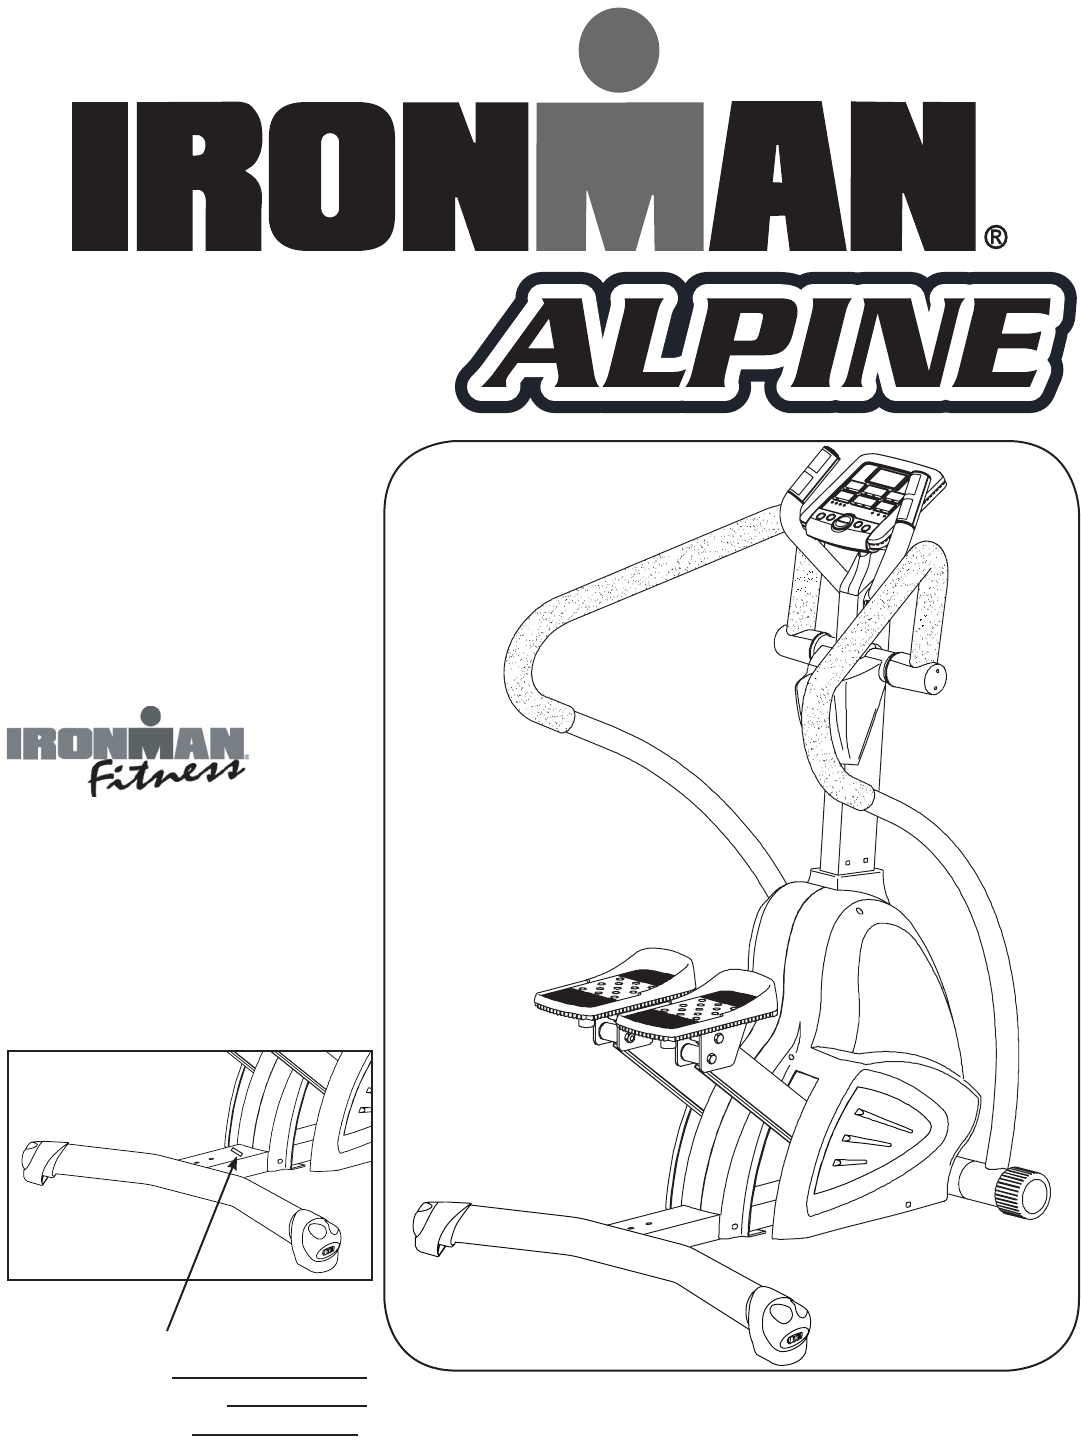 Ironman Fitness Stepper Machine Alpine User Guide